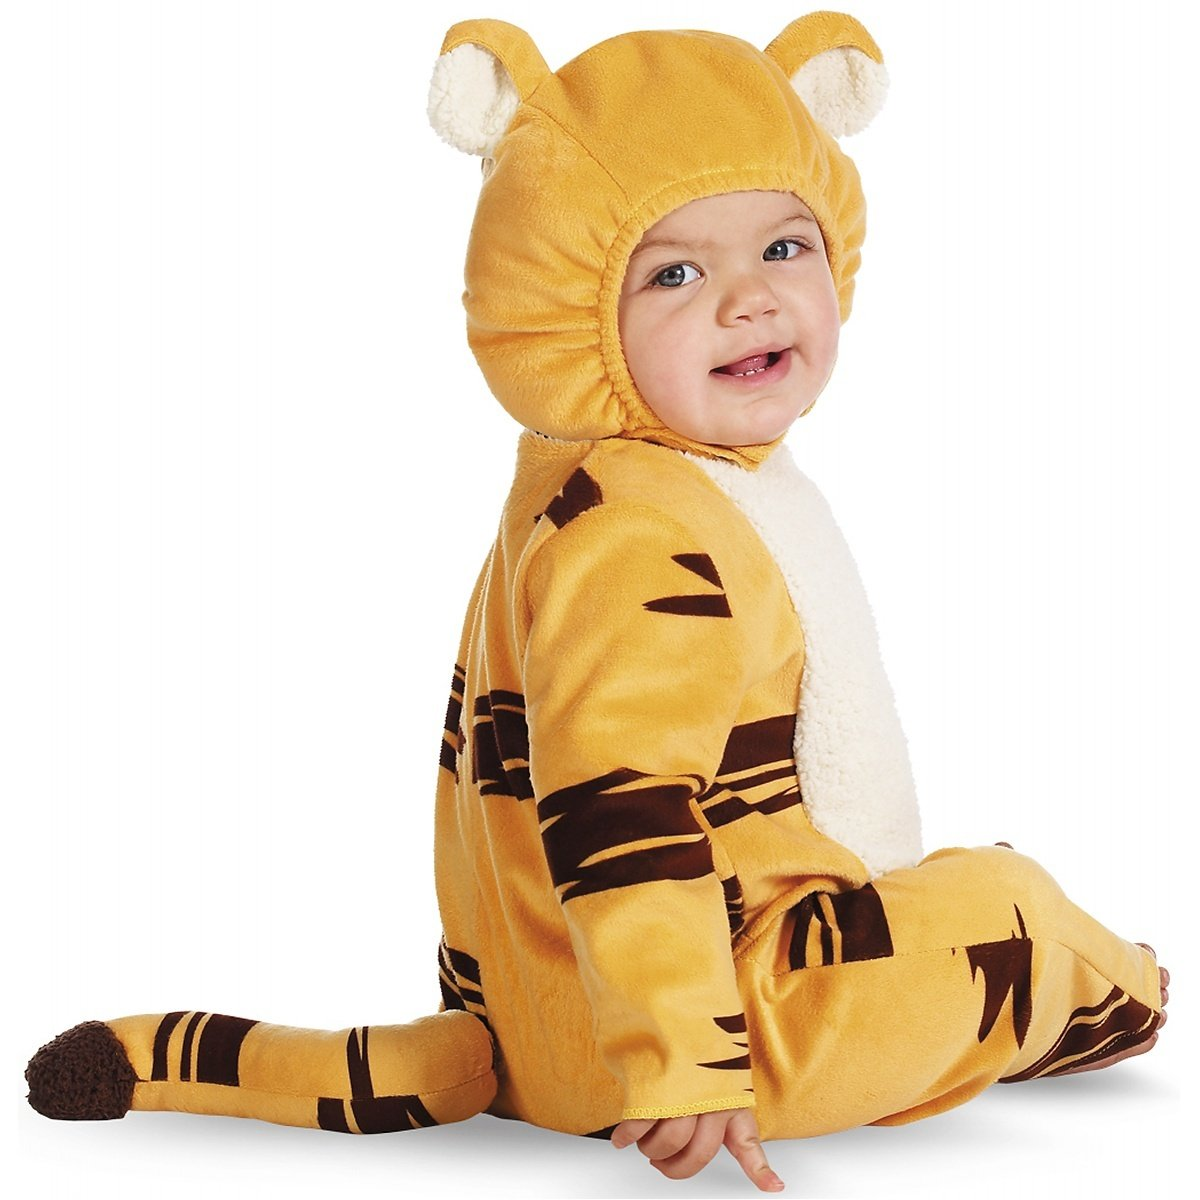 sc 1 st  Amazon.com & Amazon.com: Disney Disguise Babyu0027s Tigger Prestige Costume: Clothing